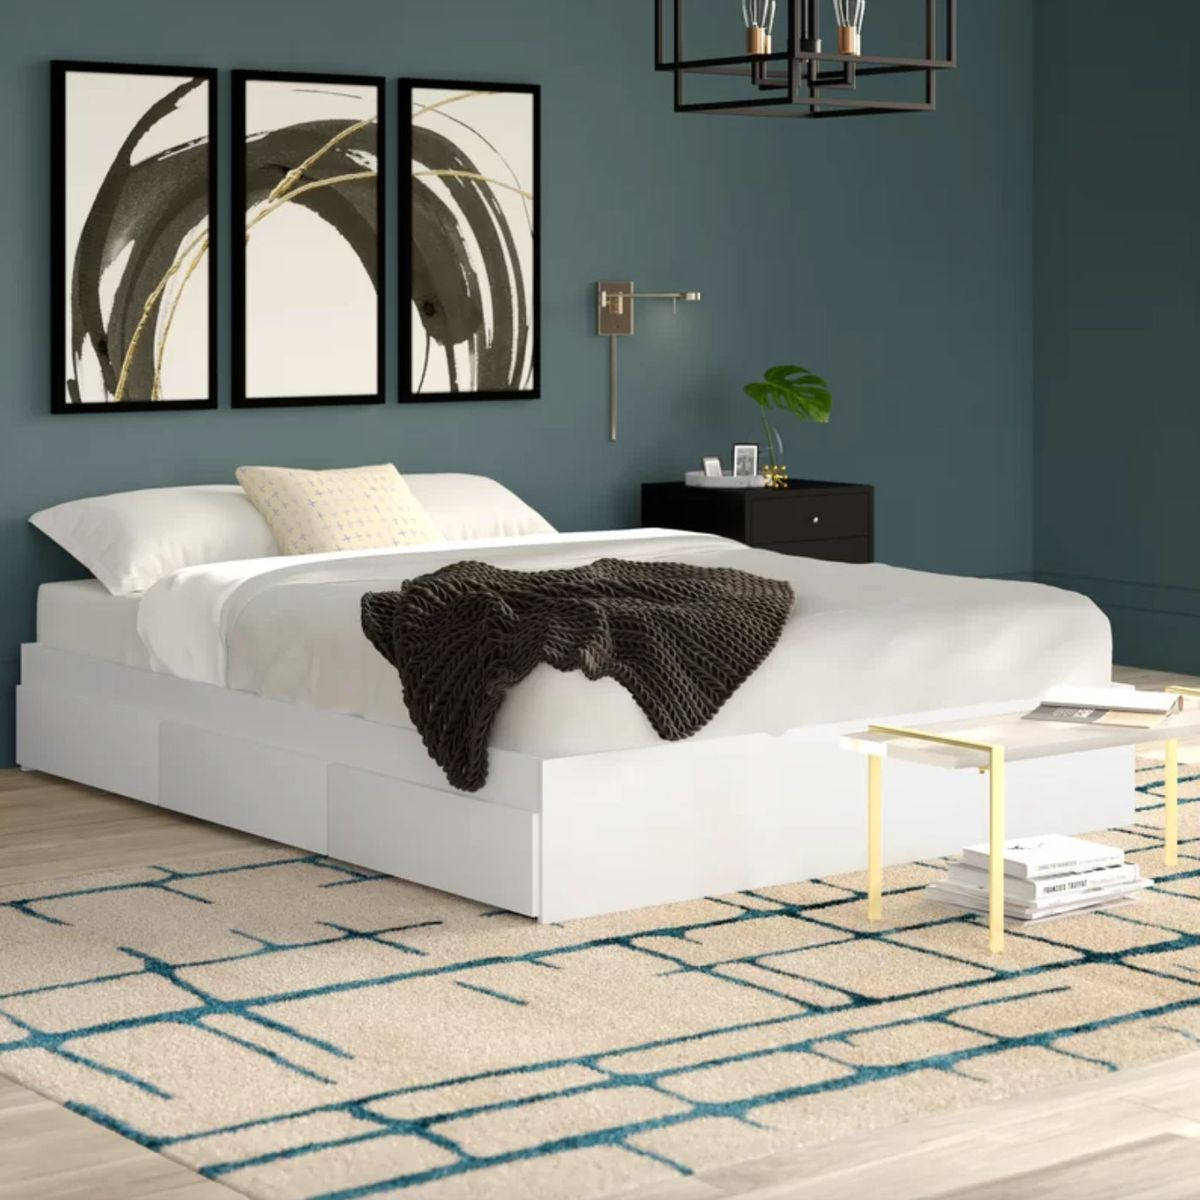 9 Best Modern Platform Beds With Storage 2020 The Strategist New York Magazine